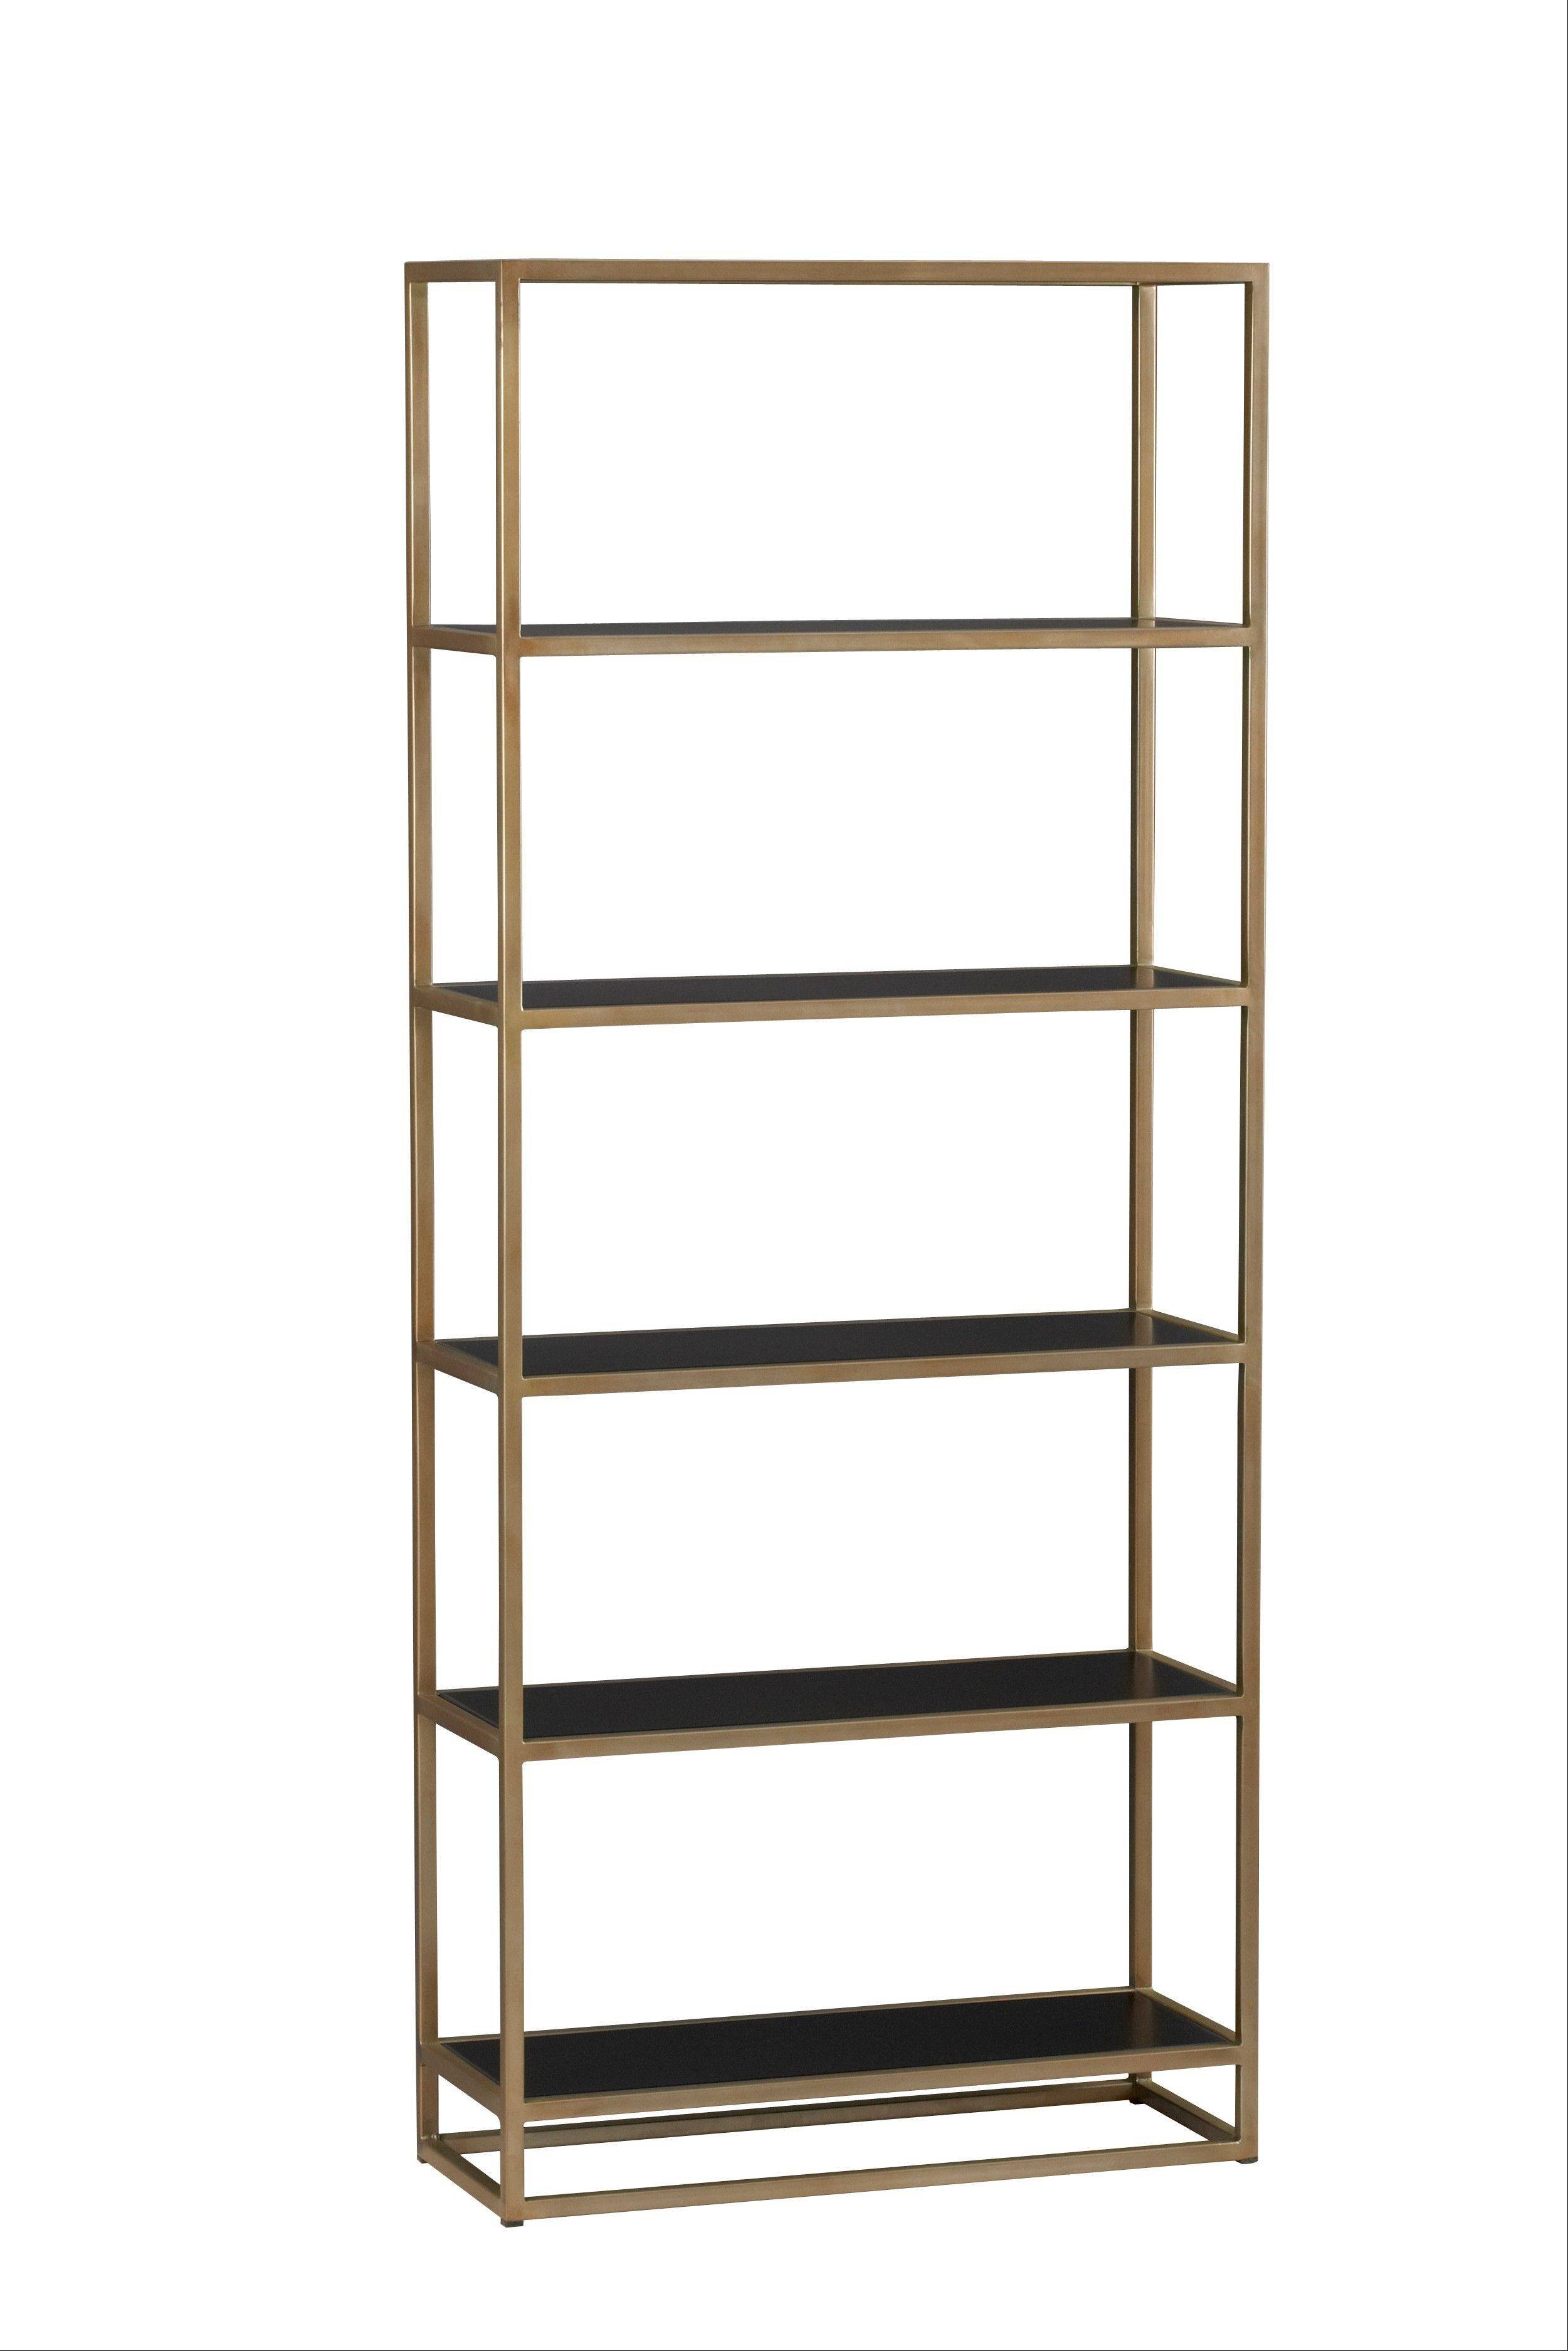 A Remi bookcase comes with a slender frame and is finished in a warm antique brass inset with handsome black powdercoat shelves.